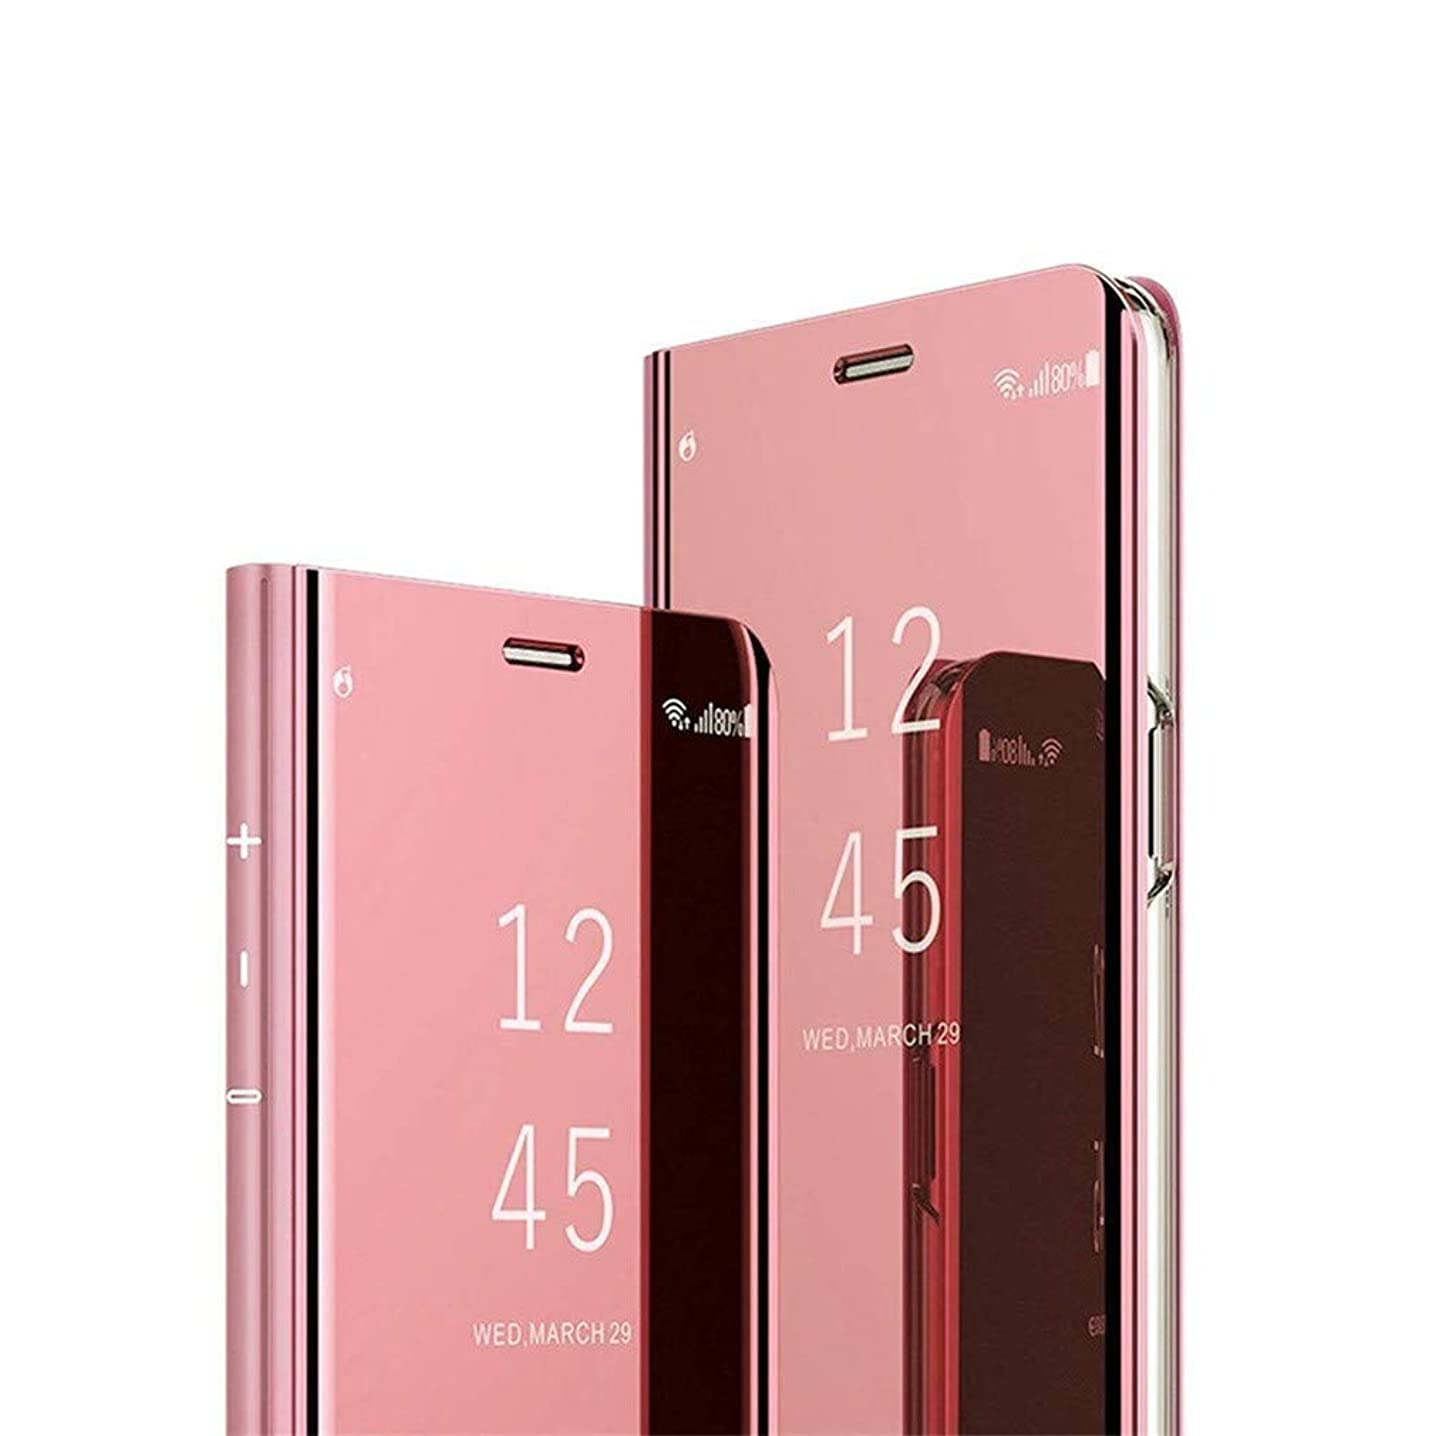 Hnzxy Xiaomi Mi 5X Case,Mirror PU Leather Case For Xiaomi Mi 5X Luxury Slim View Stand Cover Clear Flip Kickstand Shockproof Bumper Case for Xiaomi Mi 5X,Mirror PU Rose Gold